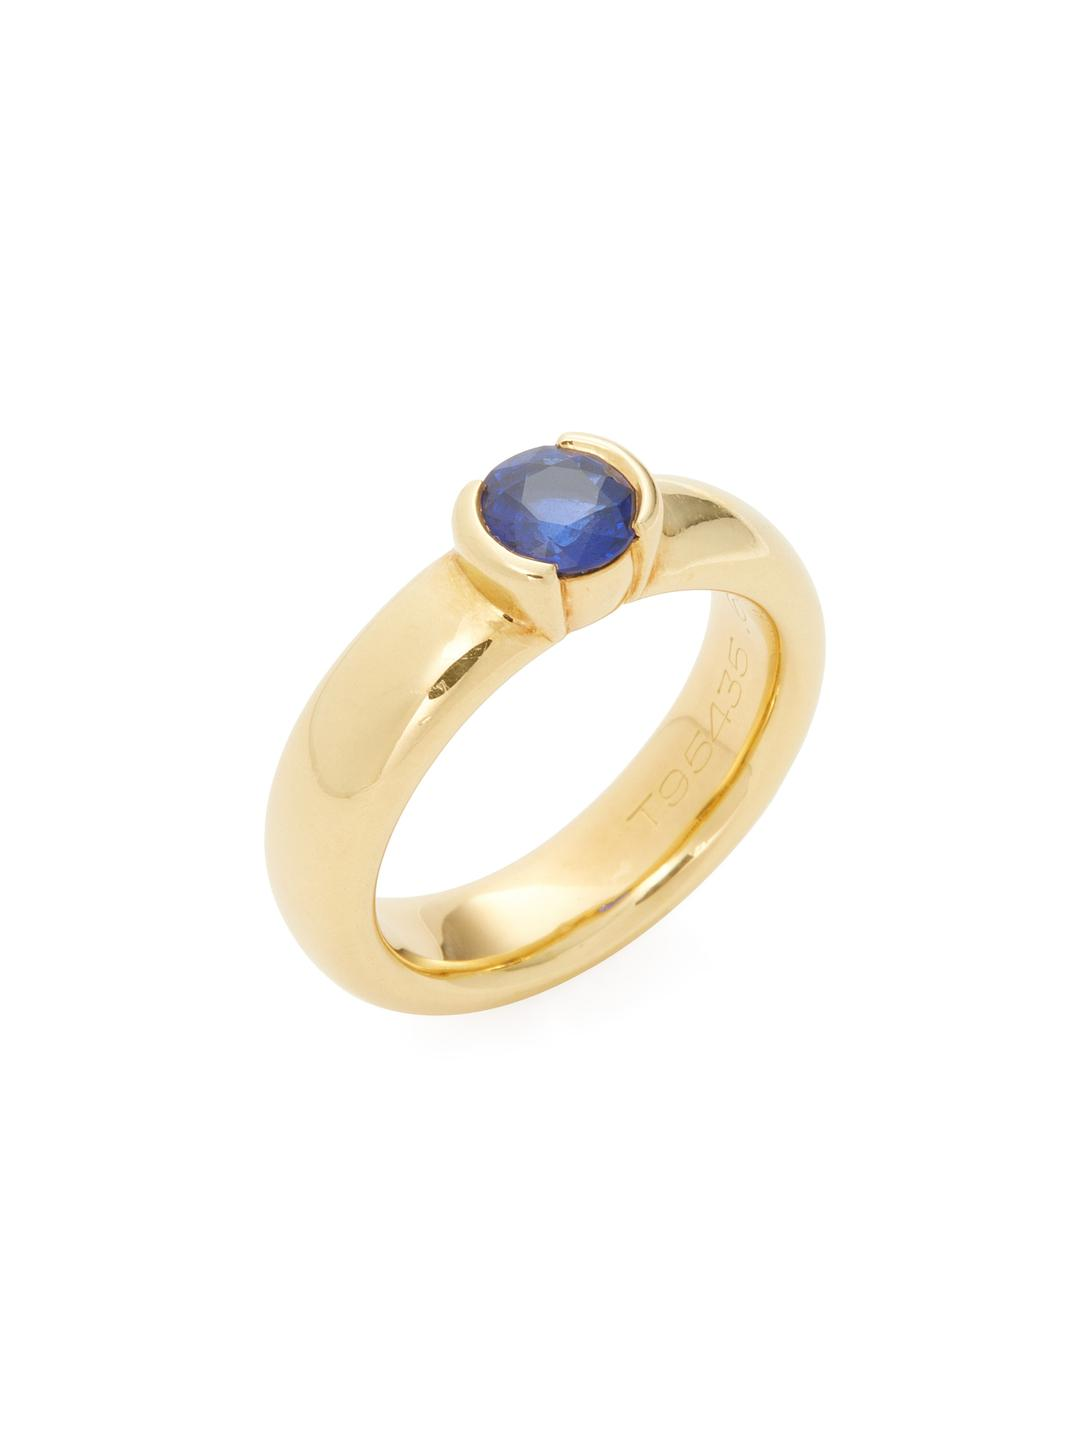 dc5546a64 Tiffany & Co. Vintage 18k Yellow Gold & Blue Stone Ring in Blue - Lyst